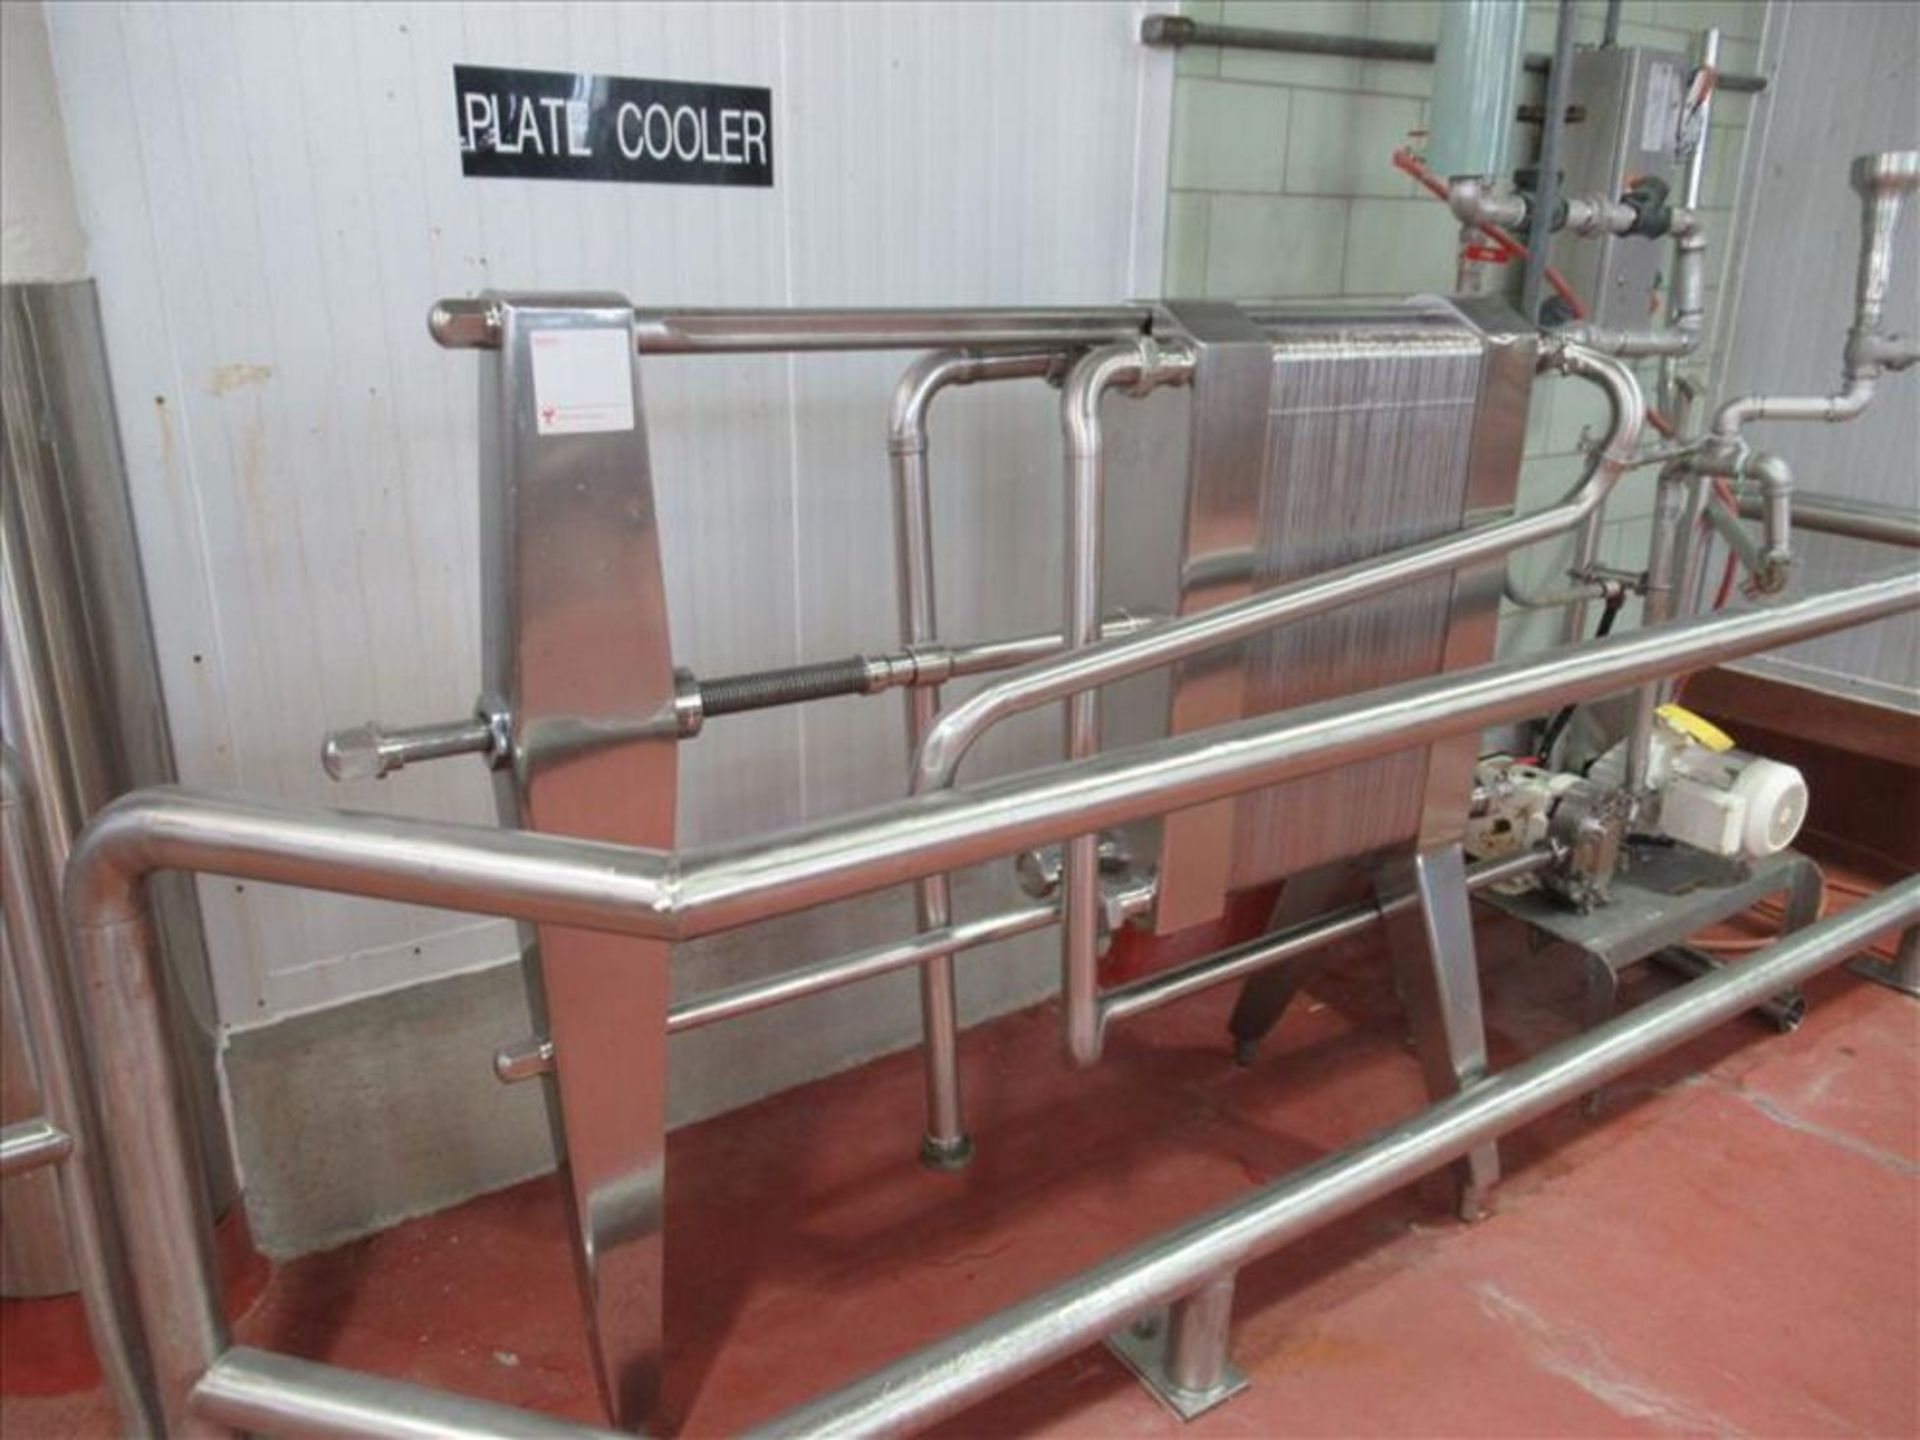 Lot 385 - APV plate cooler mod. no. Type HX ser. no. M/C 2288 stainless para flow, approx 9 in w x 32h (91)